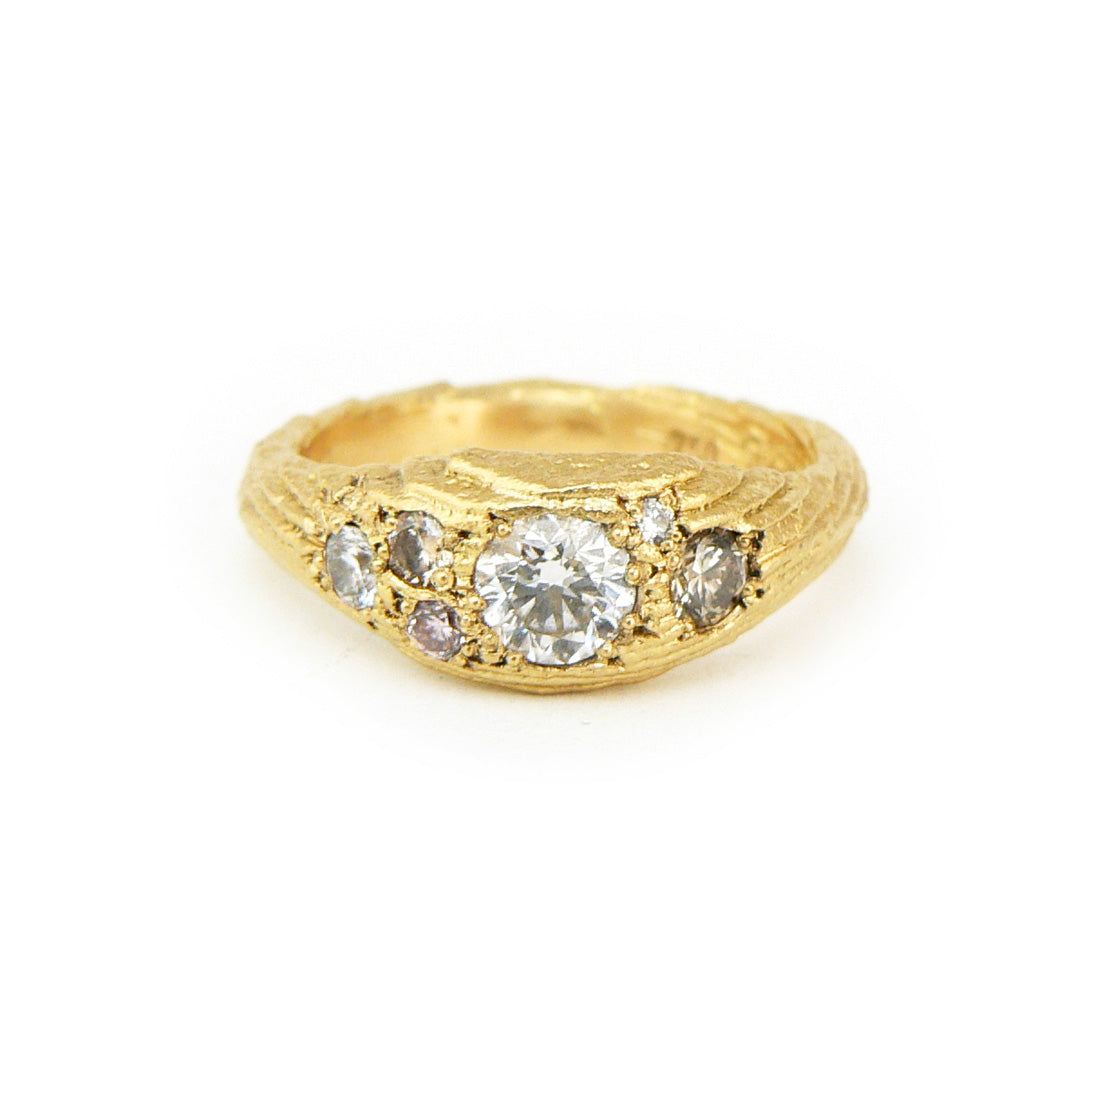 White, champagne and pink diamonds in cuttlefish cast ring in 18ct yellow gold, Custom bespoke handmade engagement ring.